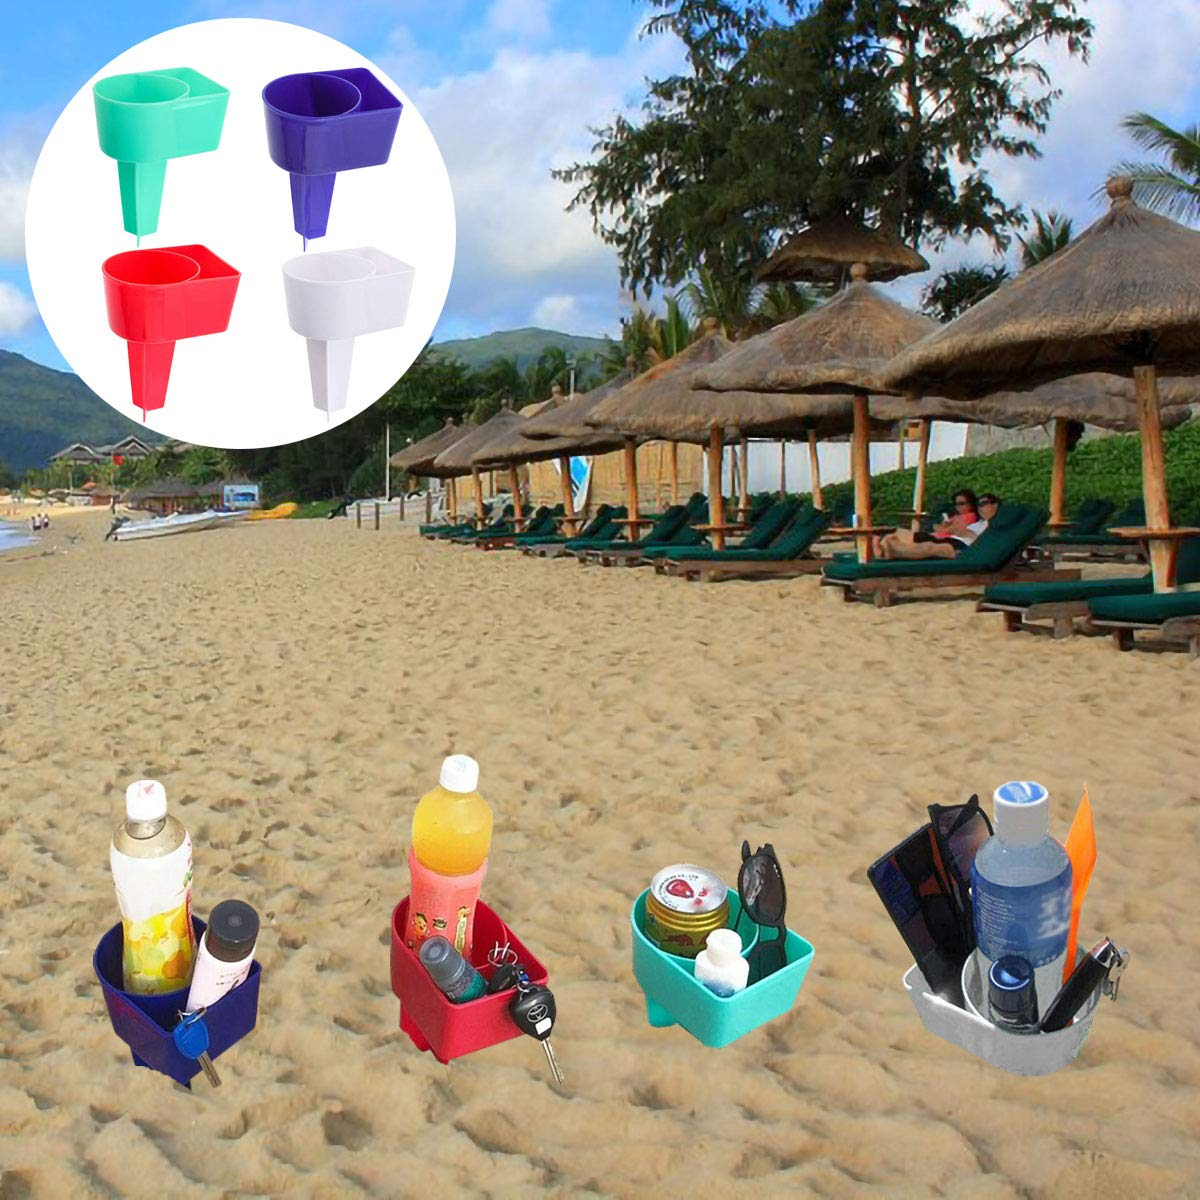 GKanMore Beach Cup Holder 4 Pack Multifunction Plastic Beach Sand Cup Holders for Beverage Phone Drinks Keys Sunglasses, 4 Colors